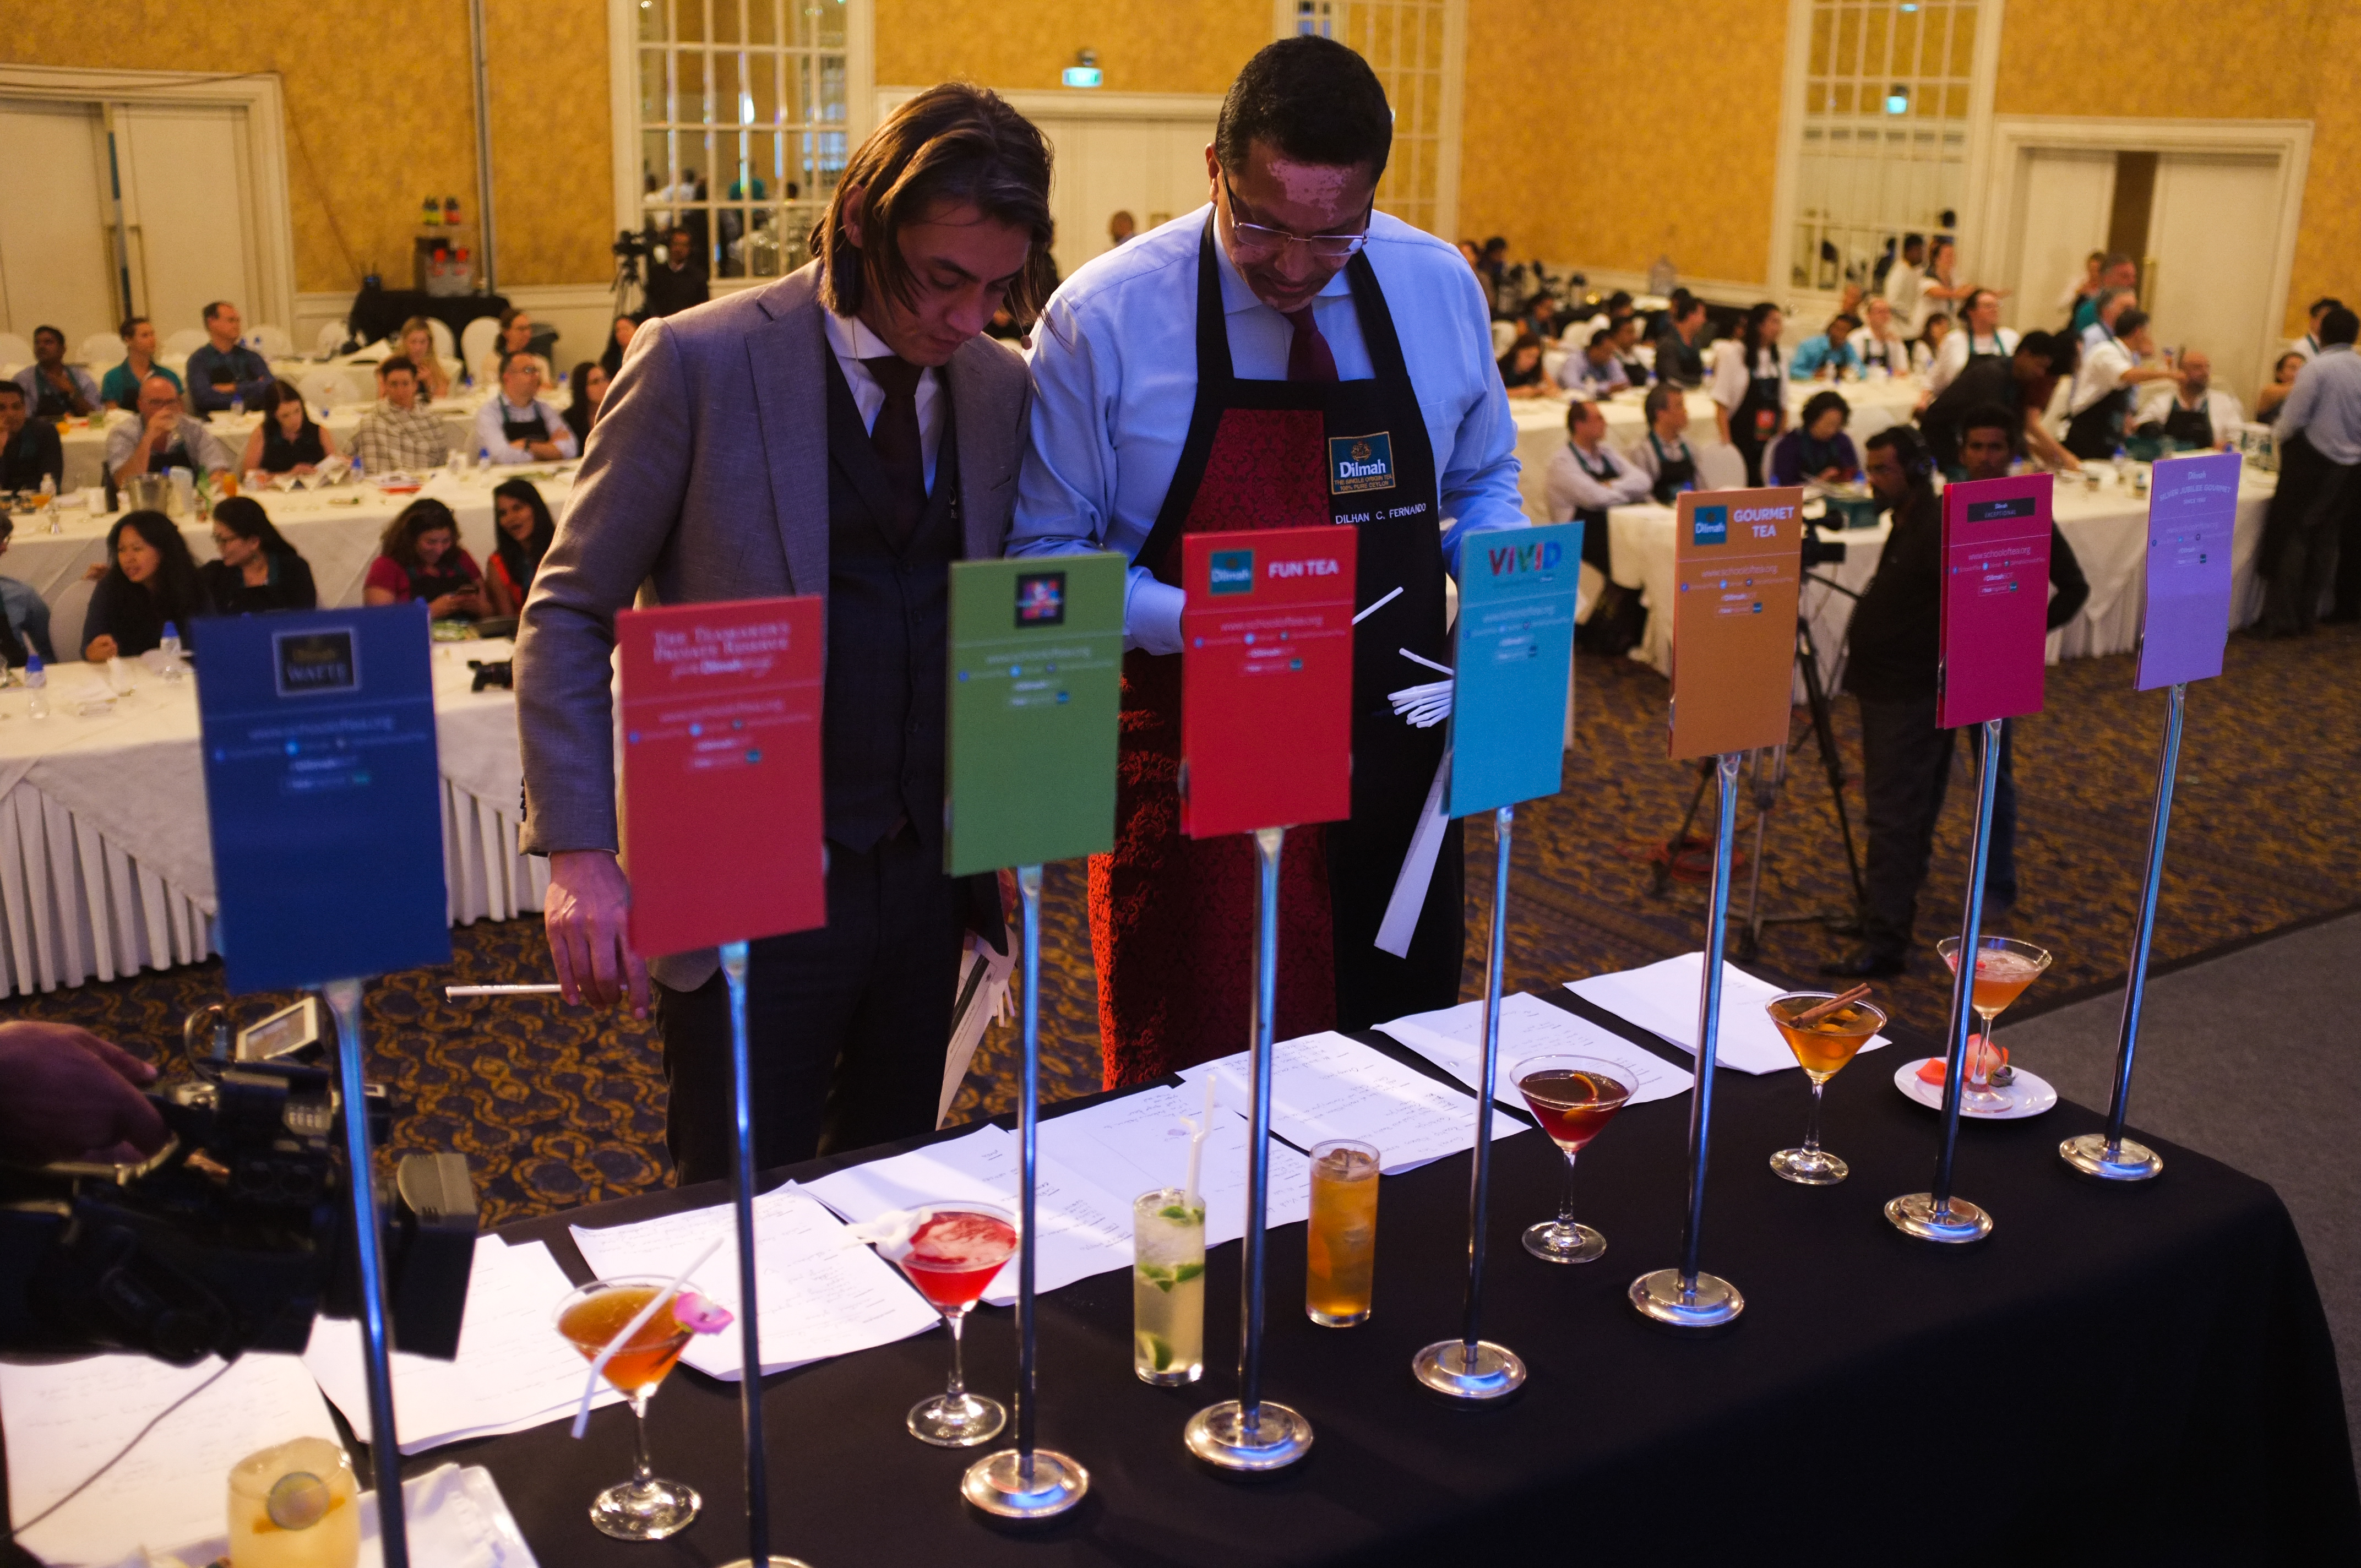 Mixology session judging of the drinks prepared by the participants